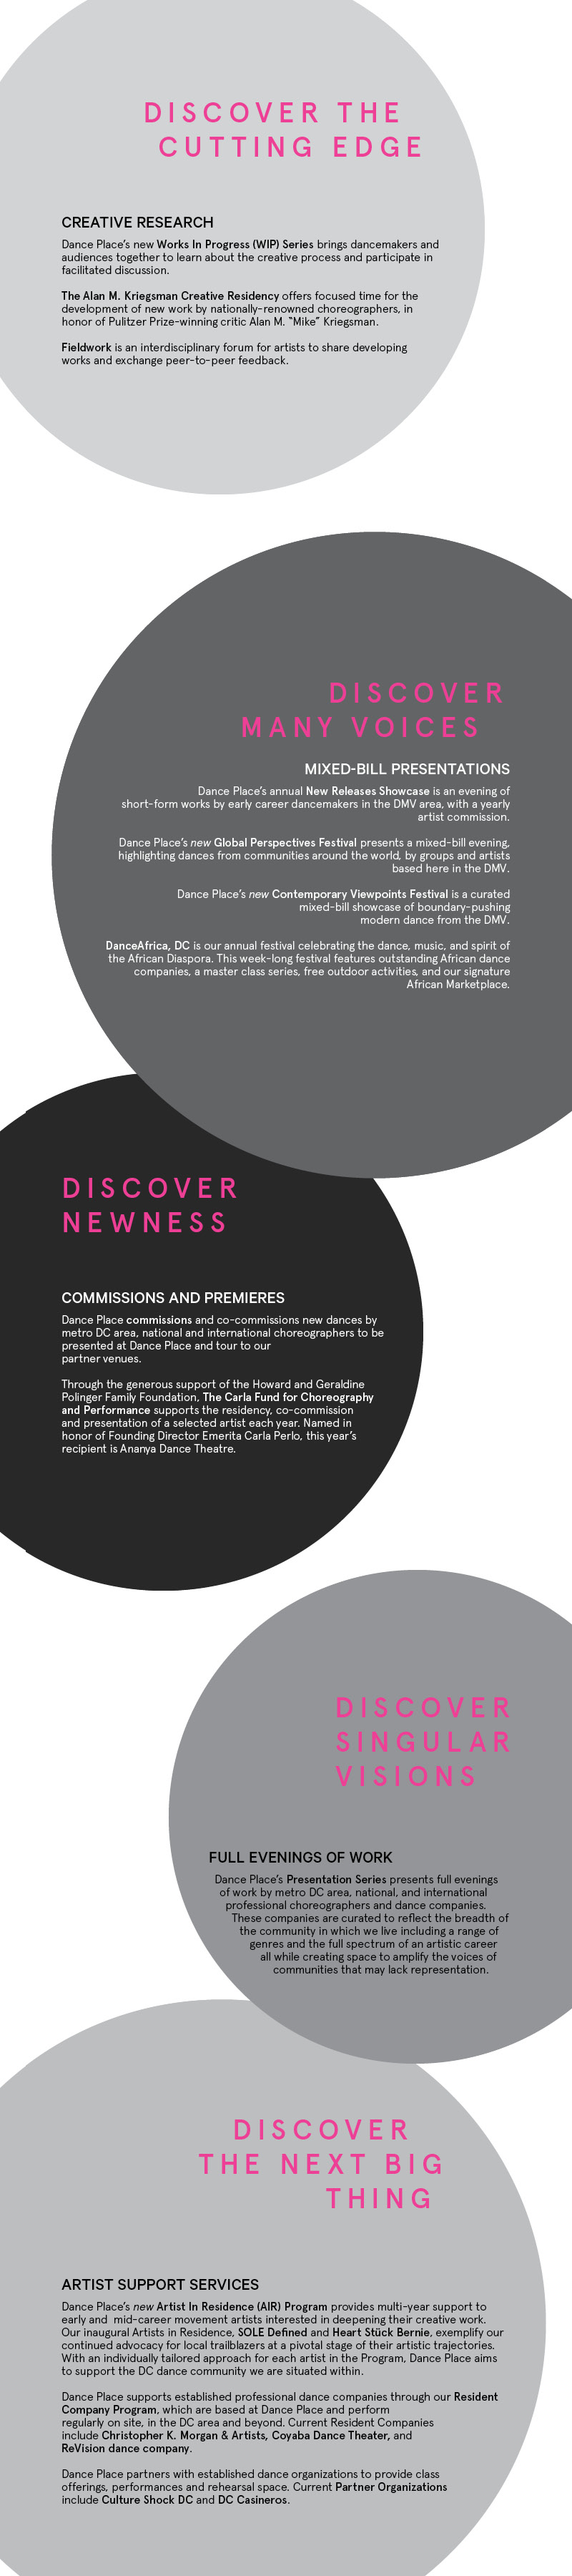 Discover Our Curatorial Vision | Dance Place